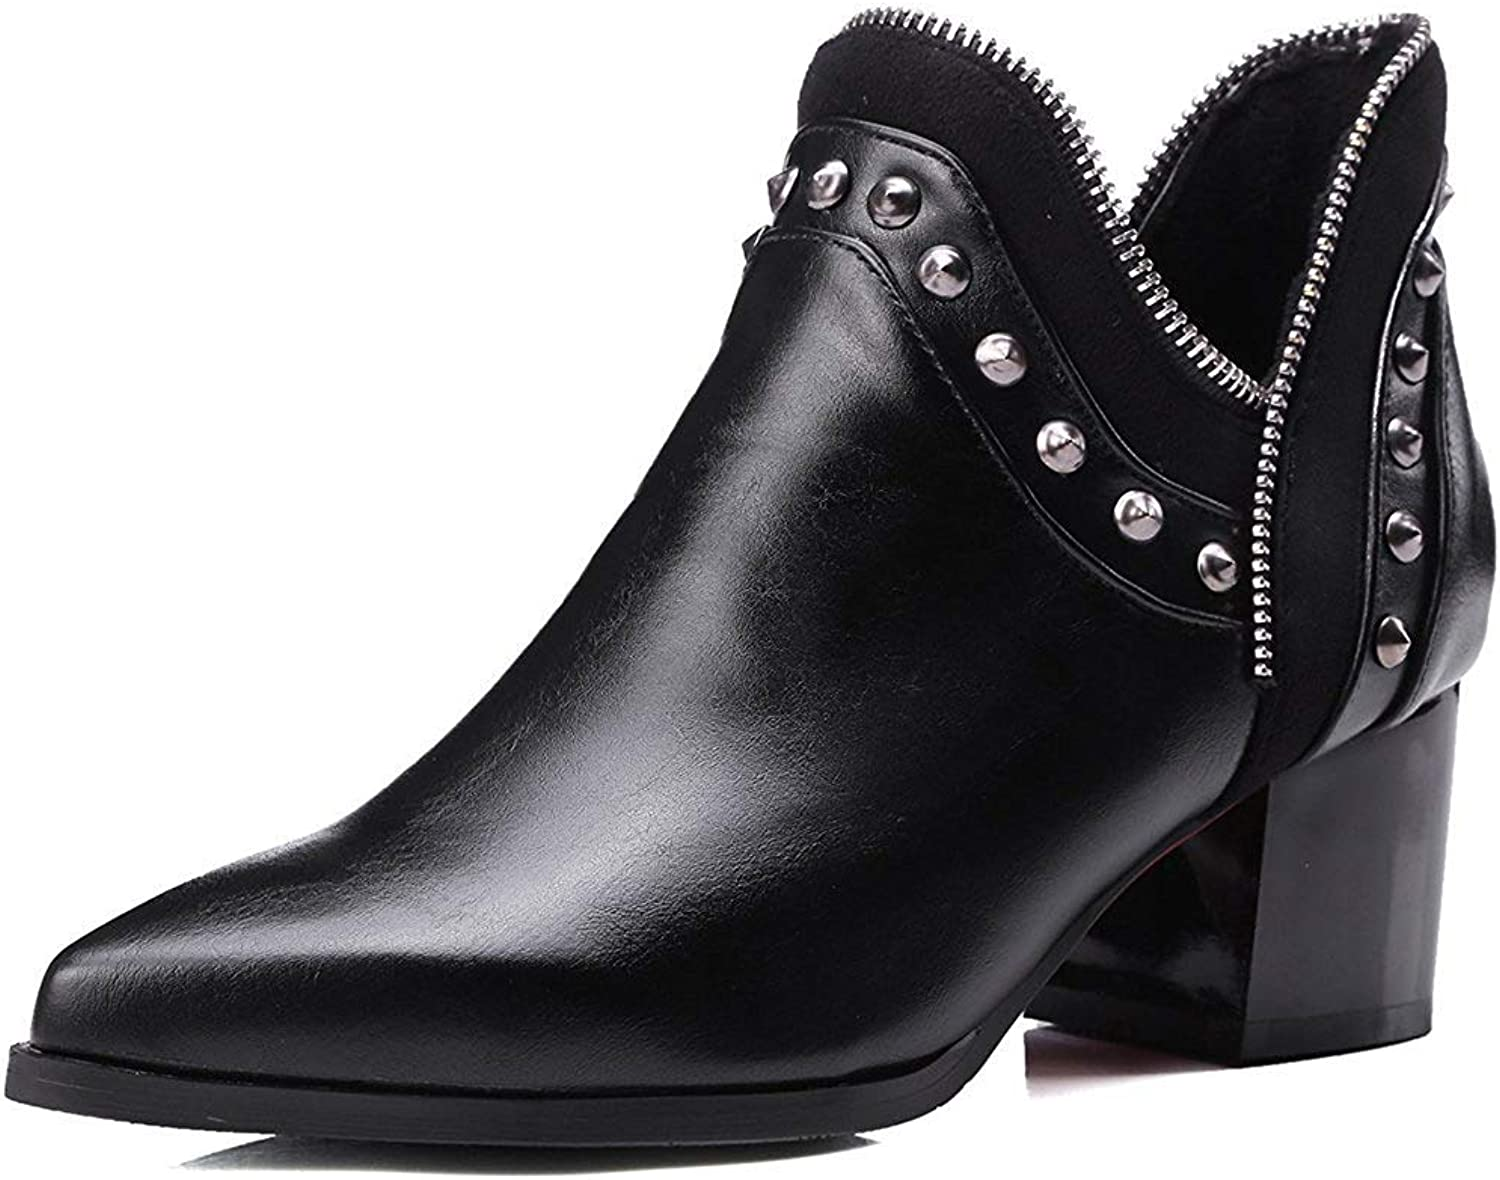 Wallhewb Women's Sexy Rivets Studded Pointed Toe Booties Block Mid Heel Slip-on Ankle Boots Breathable Leather Pants Joker No Laceup Fashion Coarse Heel Convenient Dress Black 8 M US Ankle Boots